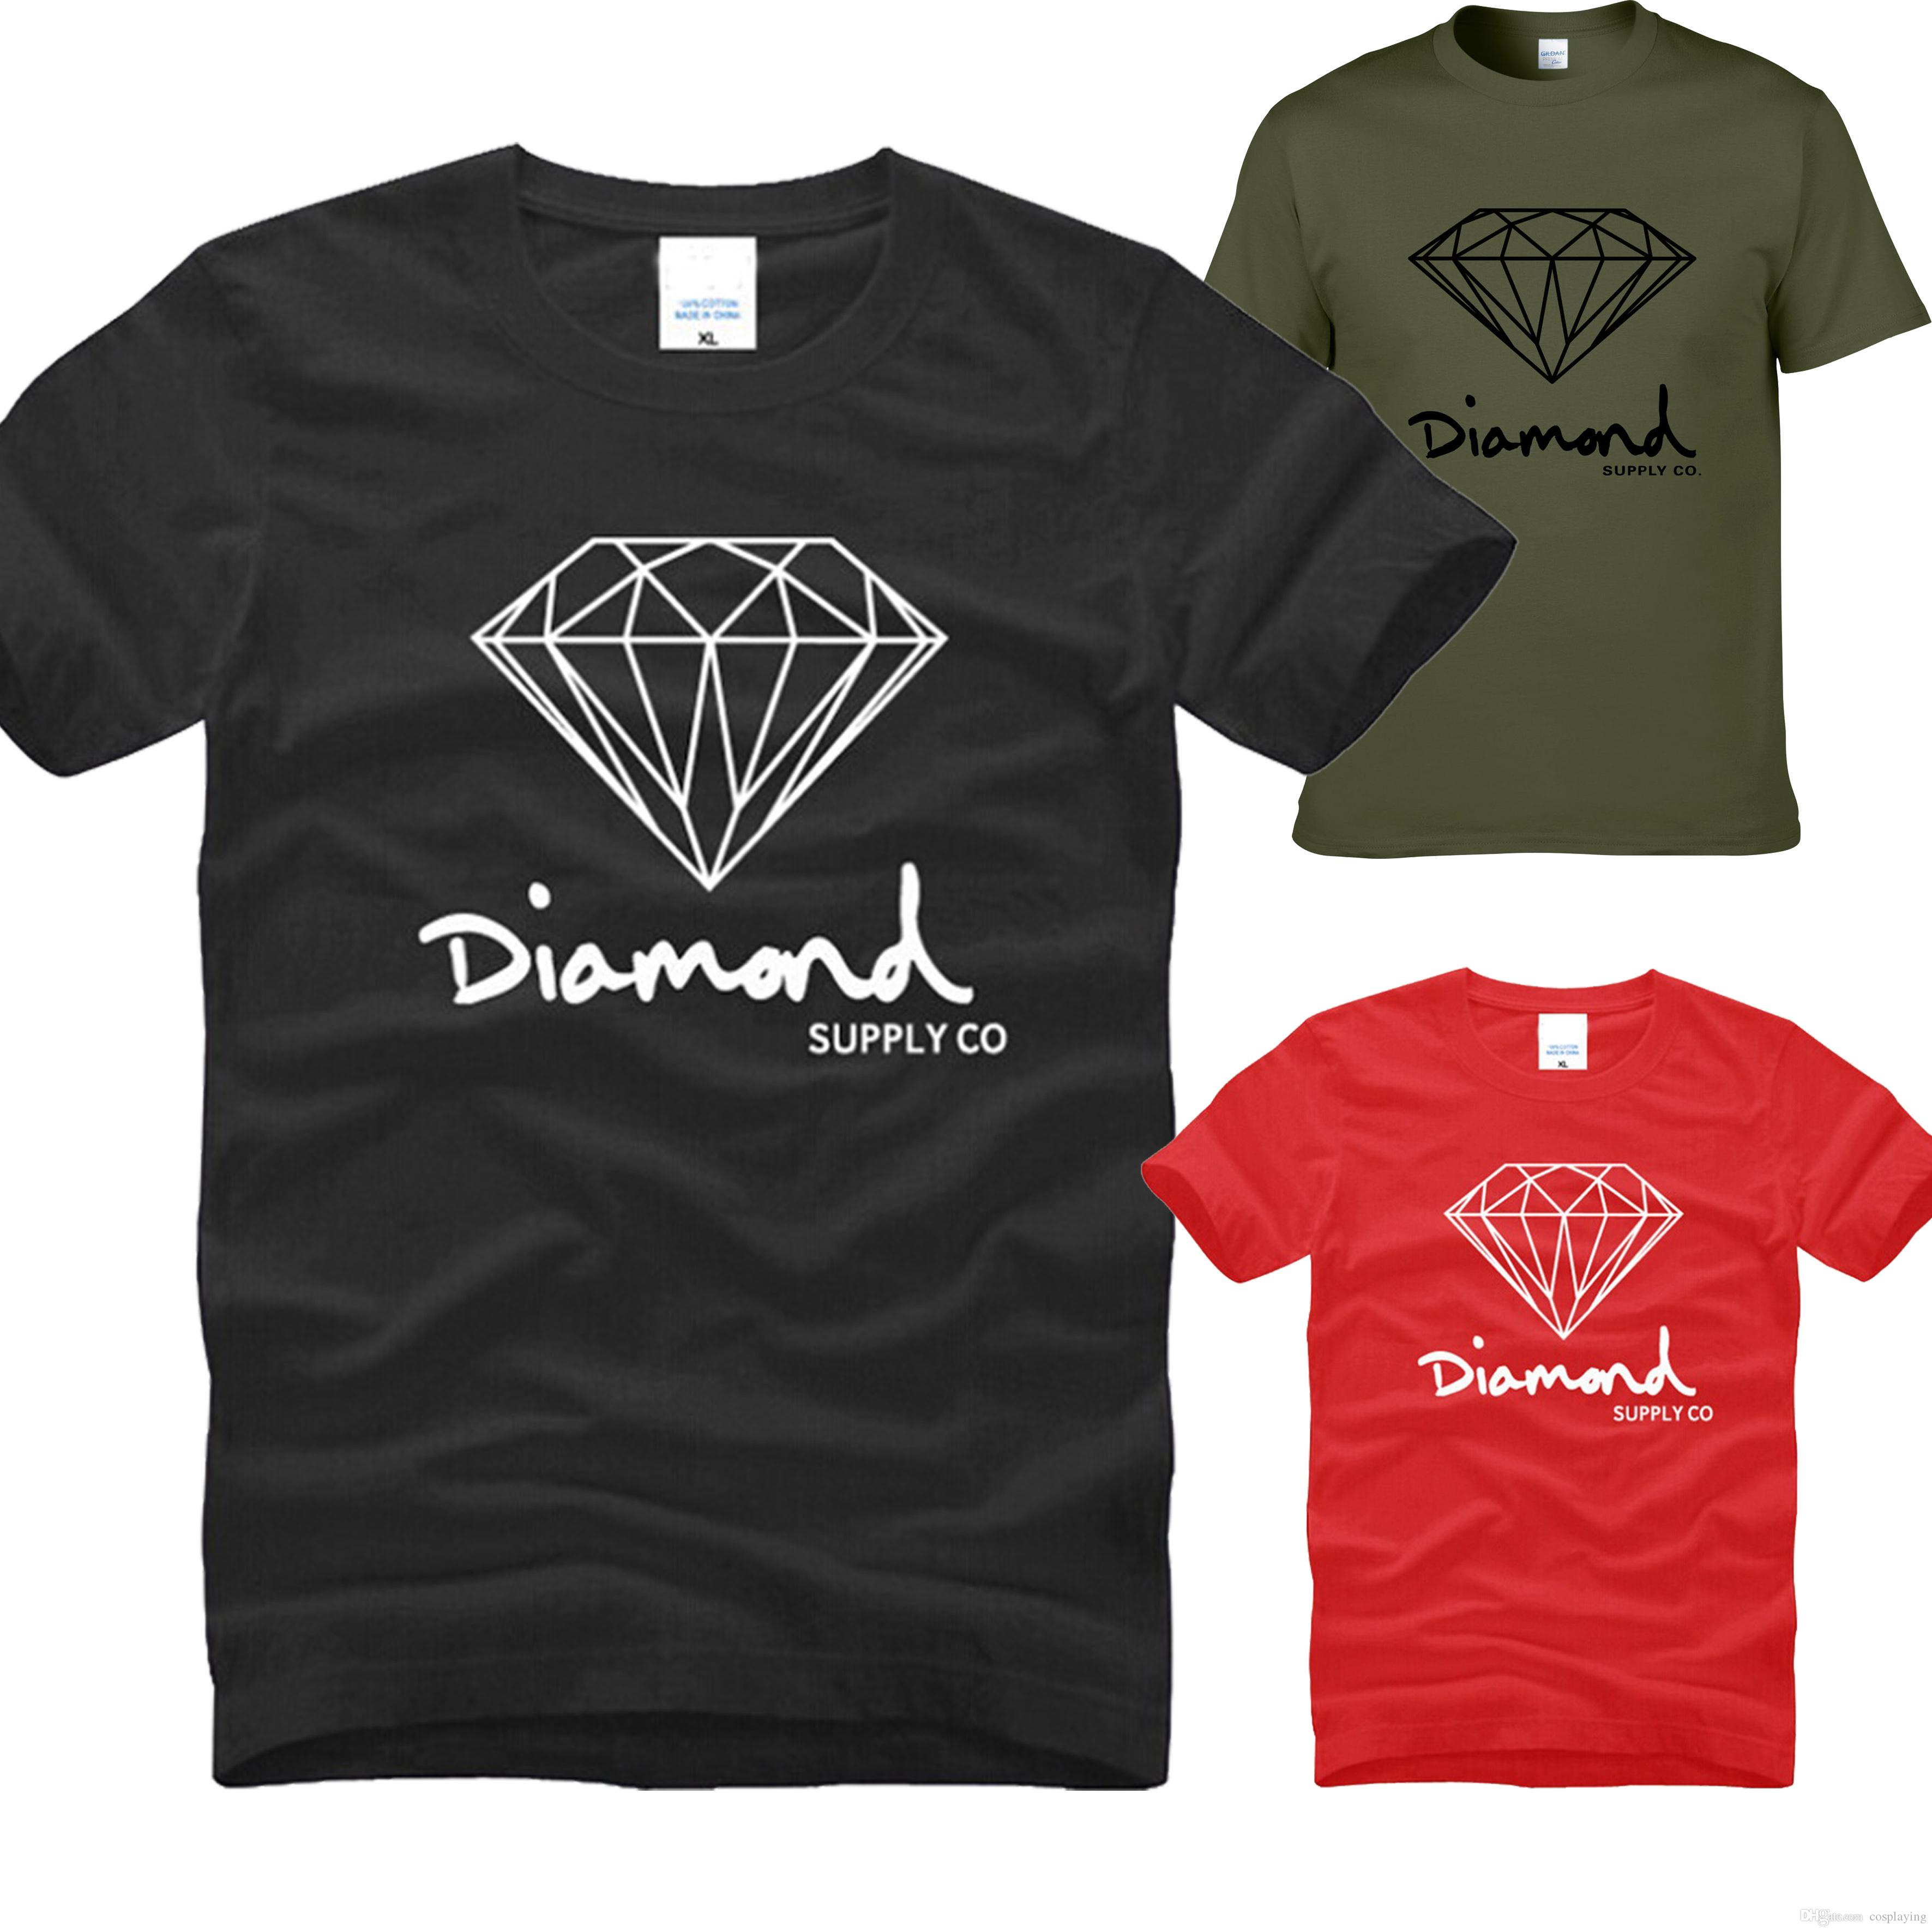 5770109dd09 Diamond Supply Co Printed T Shirt Men S Fashion Brand Design Clothes MAle  South Coast Harajuku Skate Hip Hop Short Sleeve Sportswear Funny Tee Shirts  Mens T ...